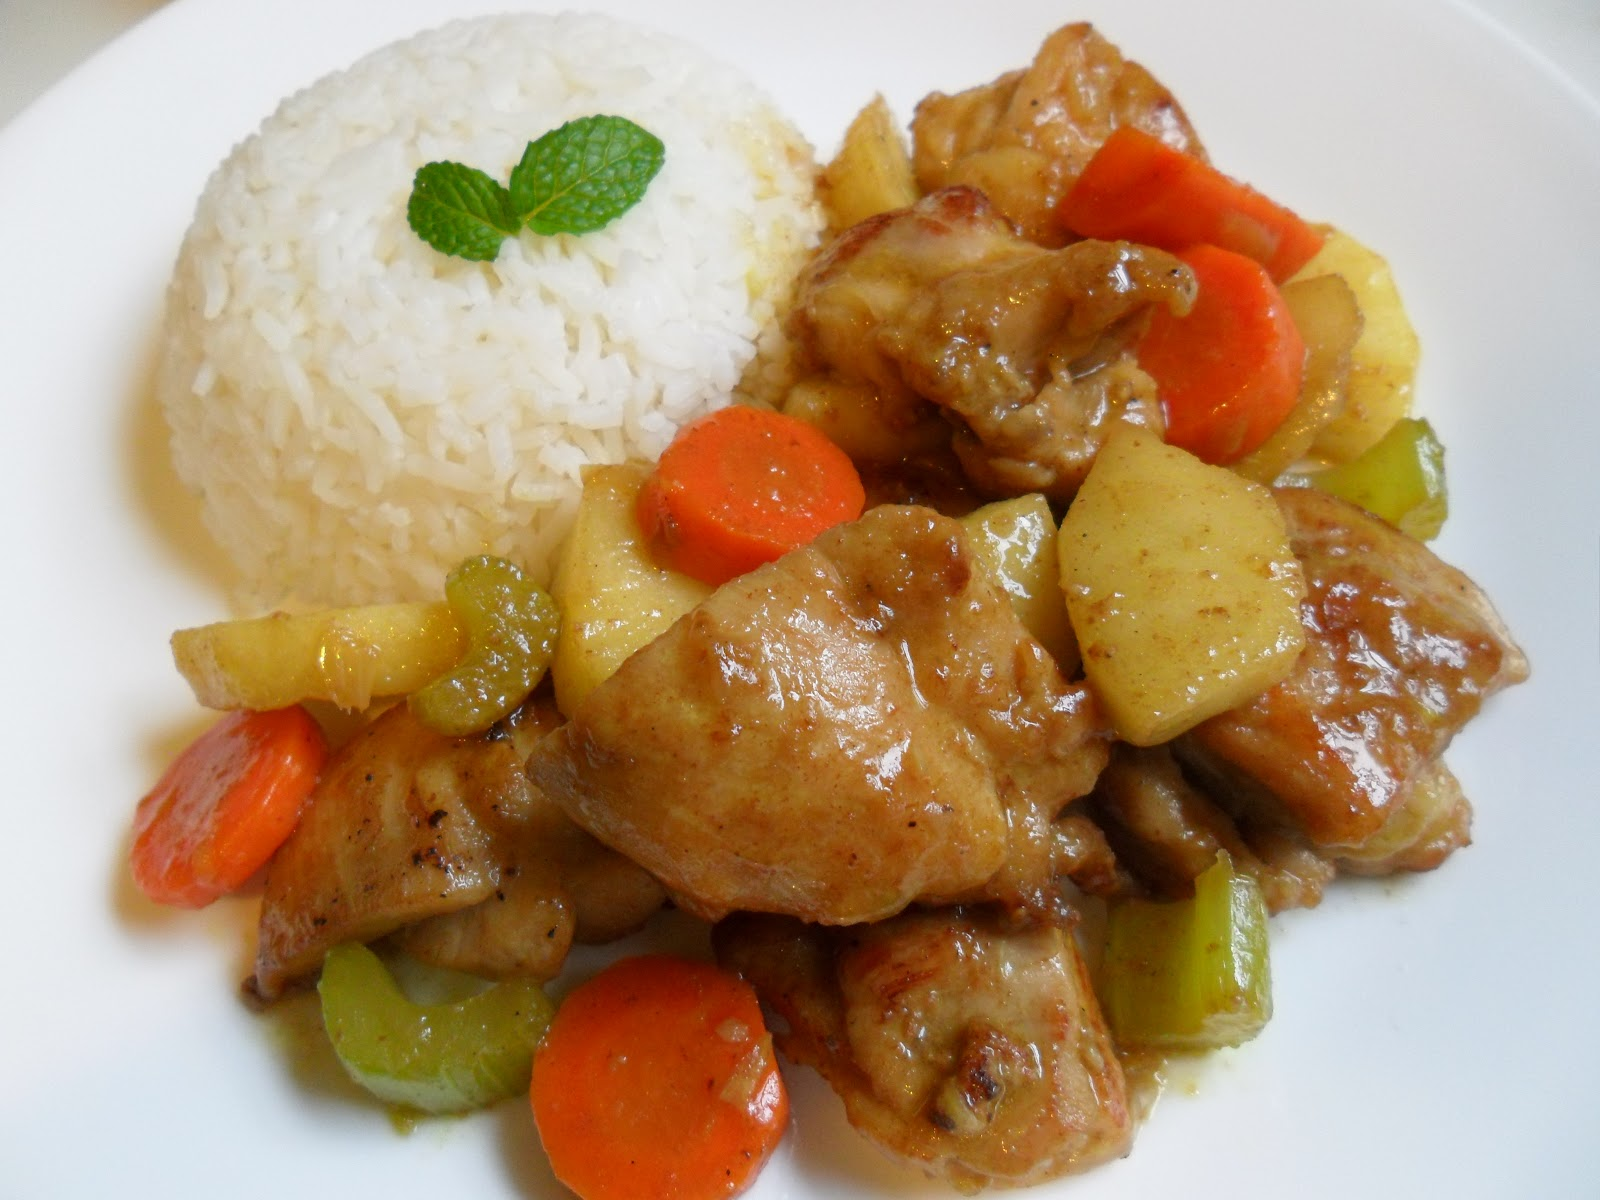 ... Soul Food: Chicken with Green Apple Curry Sauce- Ga Nau voi Tao Xanh